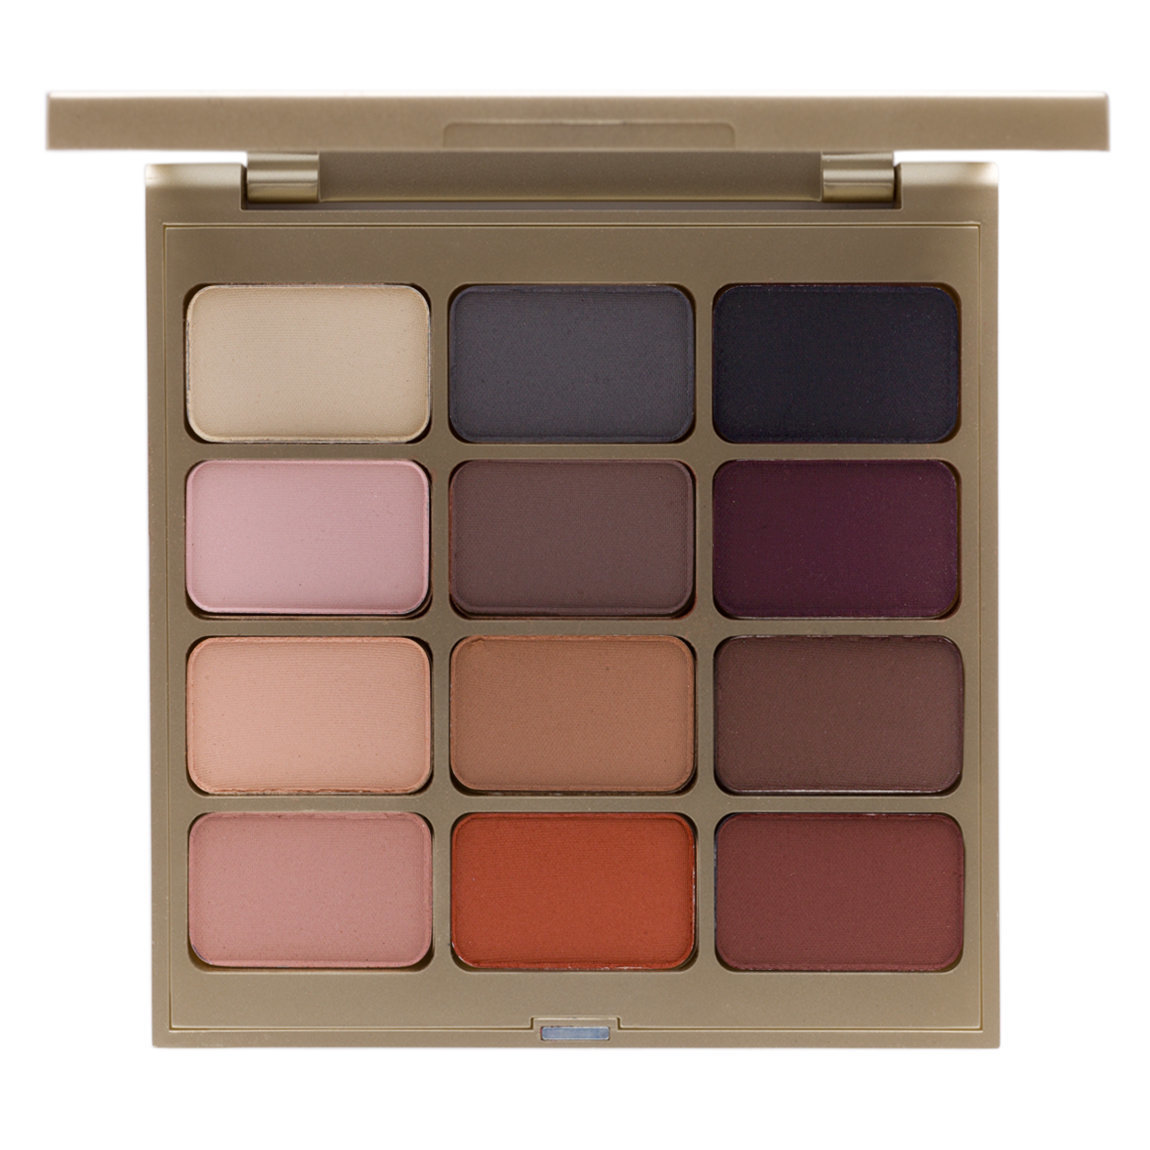 Stila Eyes Are The Window Shadow Palette Mind alternative view 1 - product swatch.